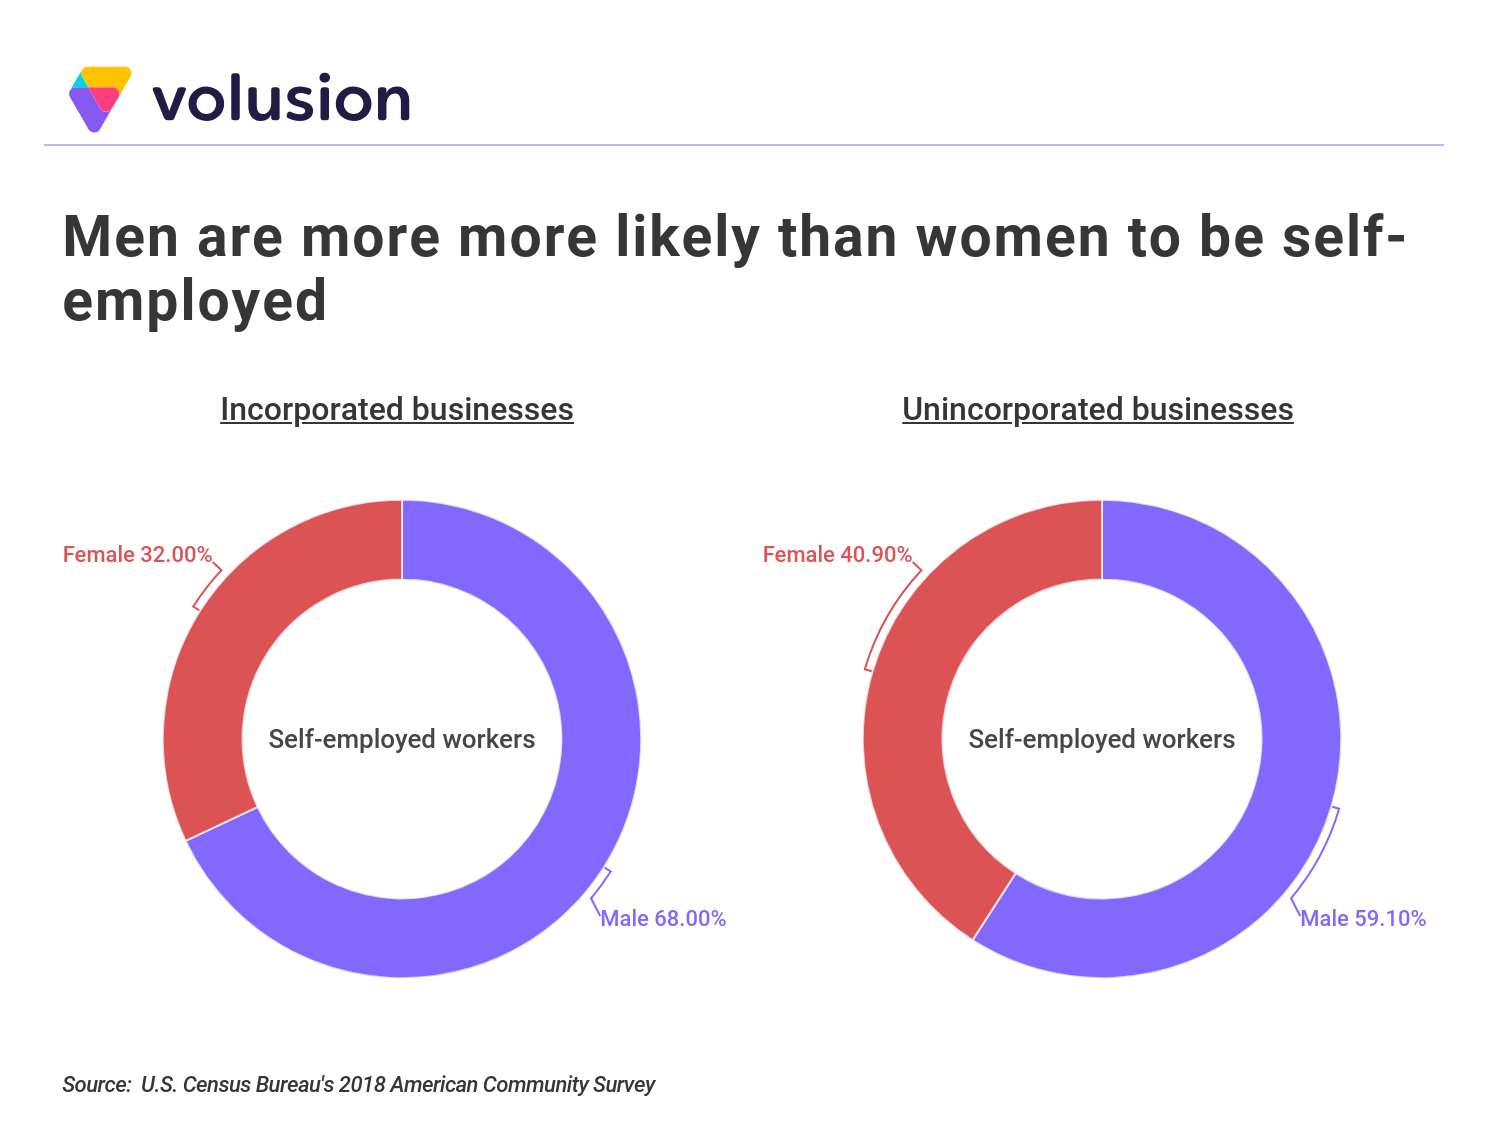 Chart demonstrating that men are more likely than women to be self-employed.